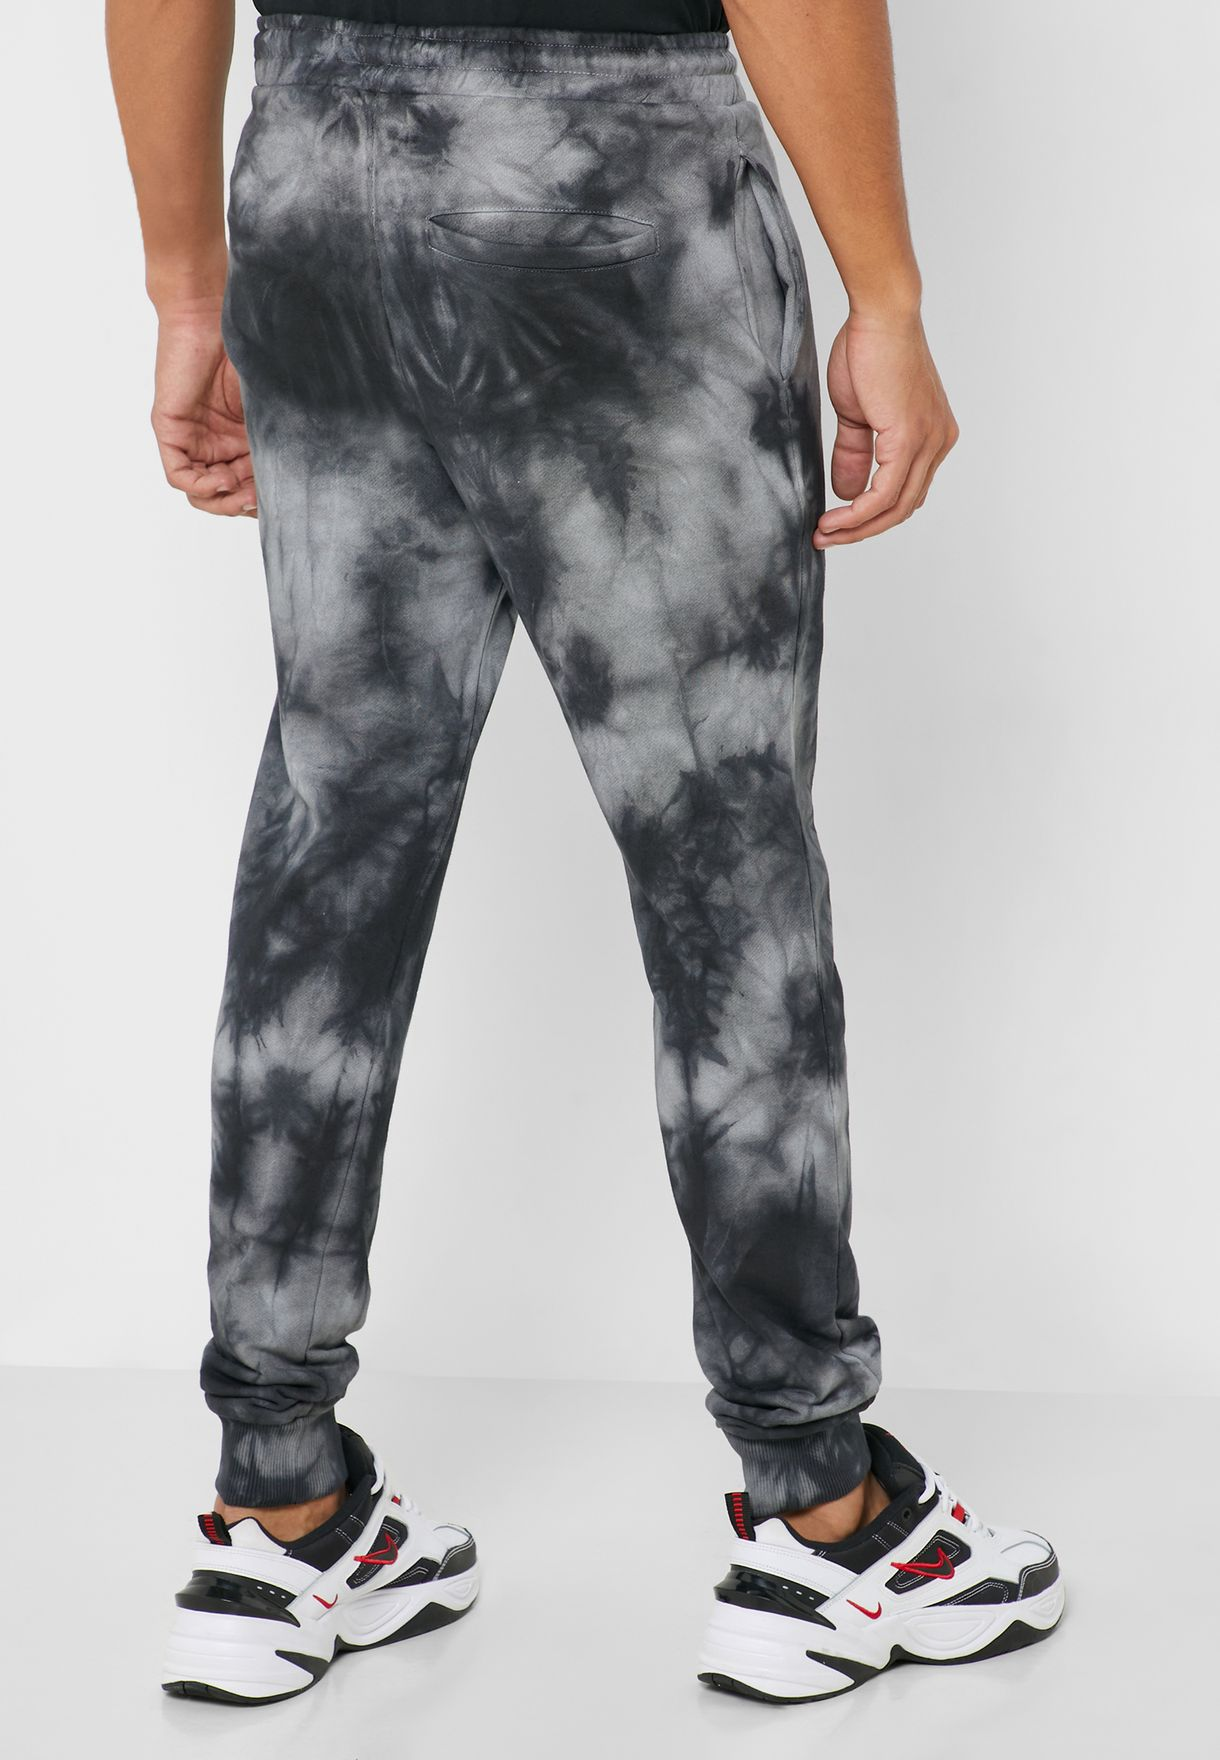 Splash Tie Dye Sweatpants